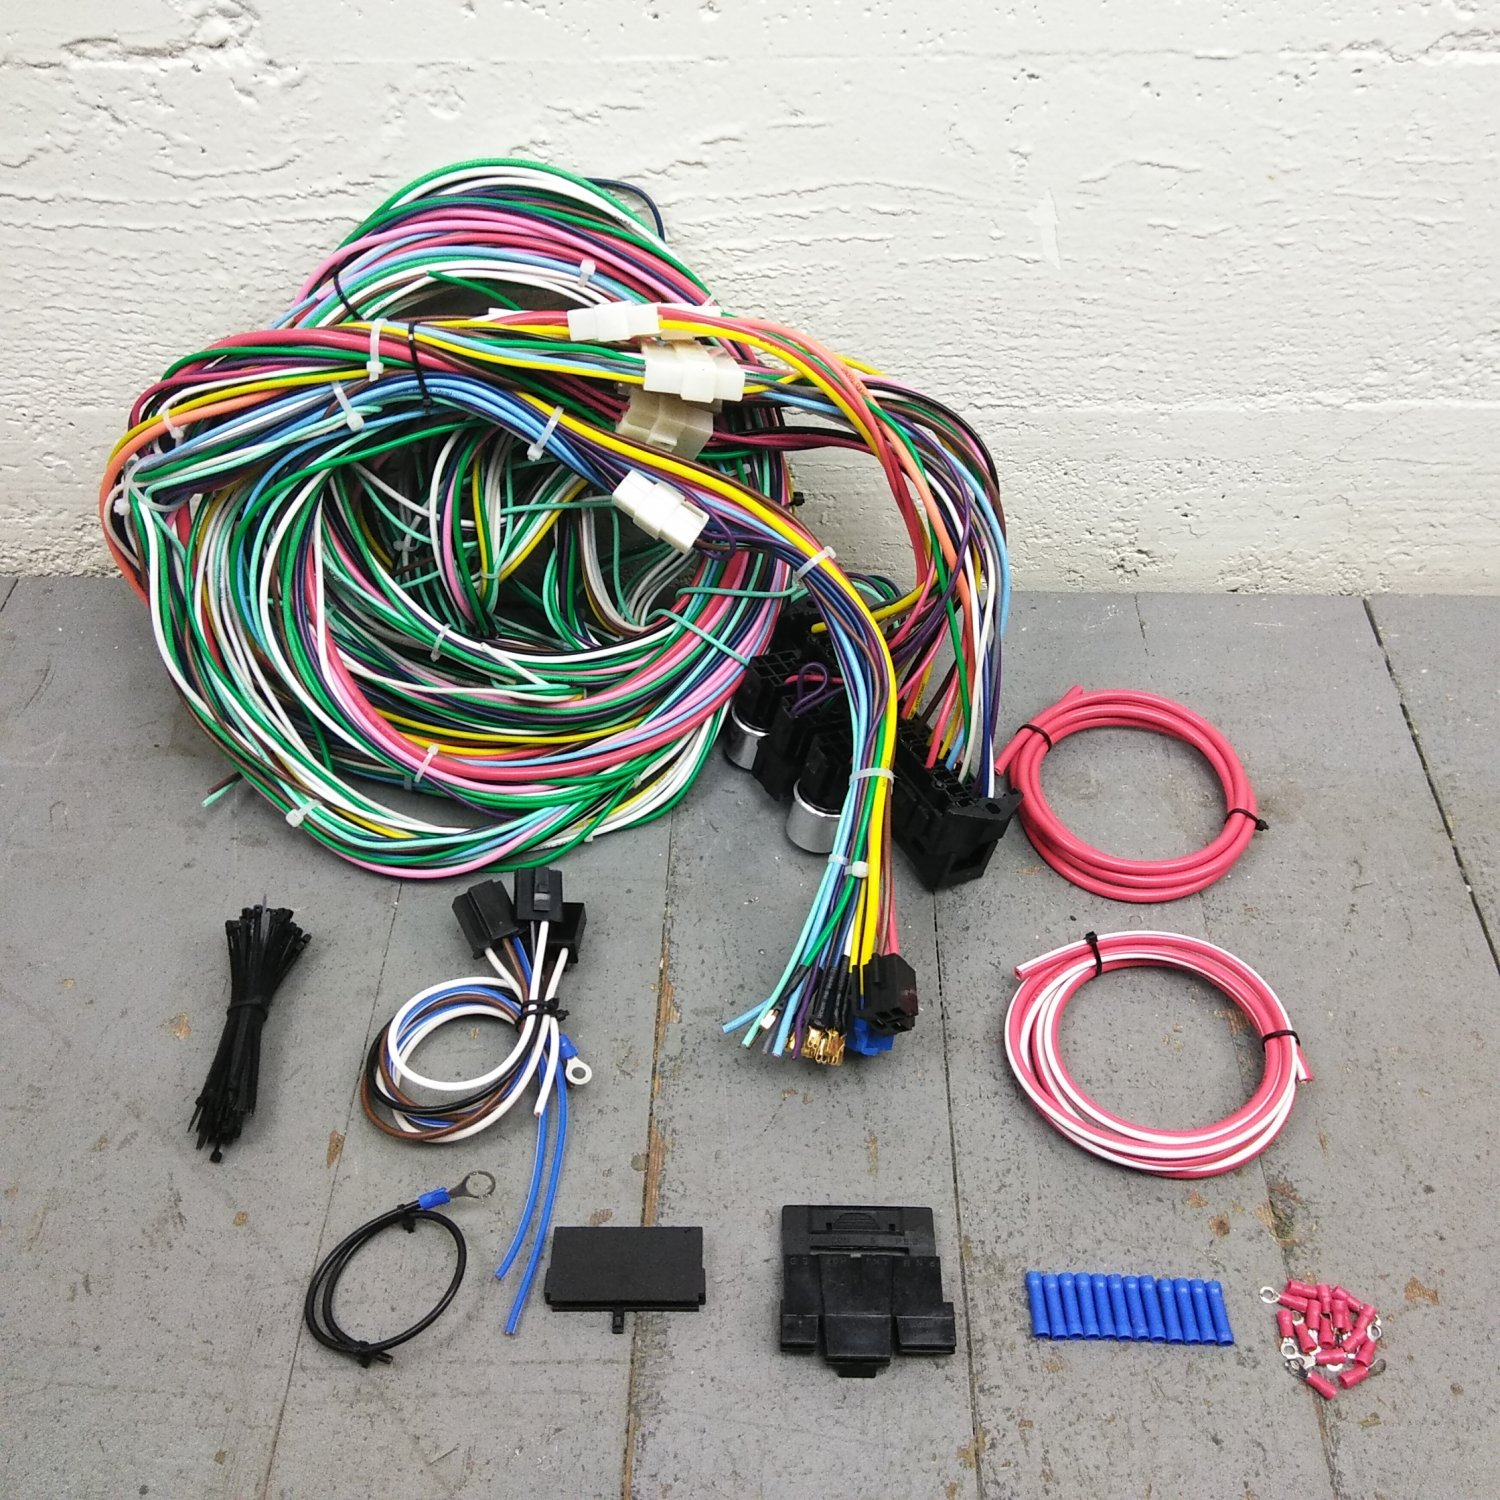 hight resolution of 1948 and later studebaker wire harness upgrade kit fits painless fuse new update bar product description c